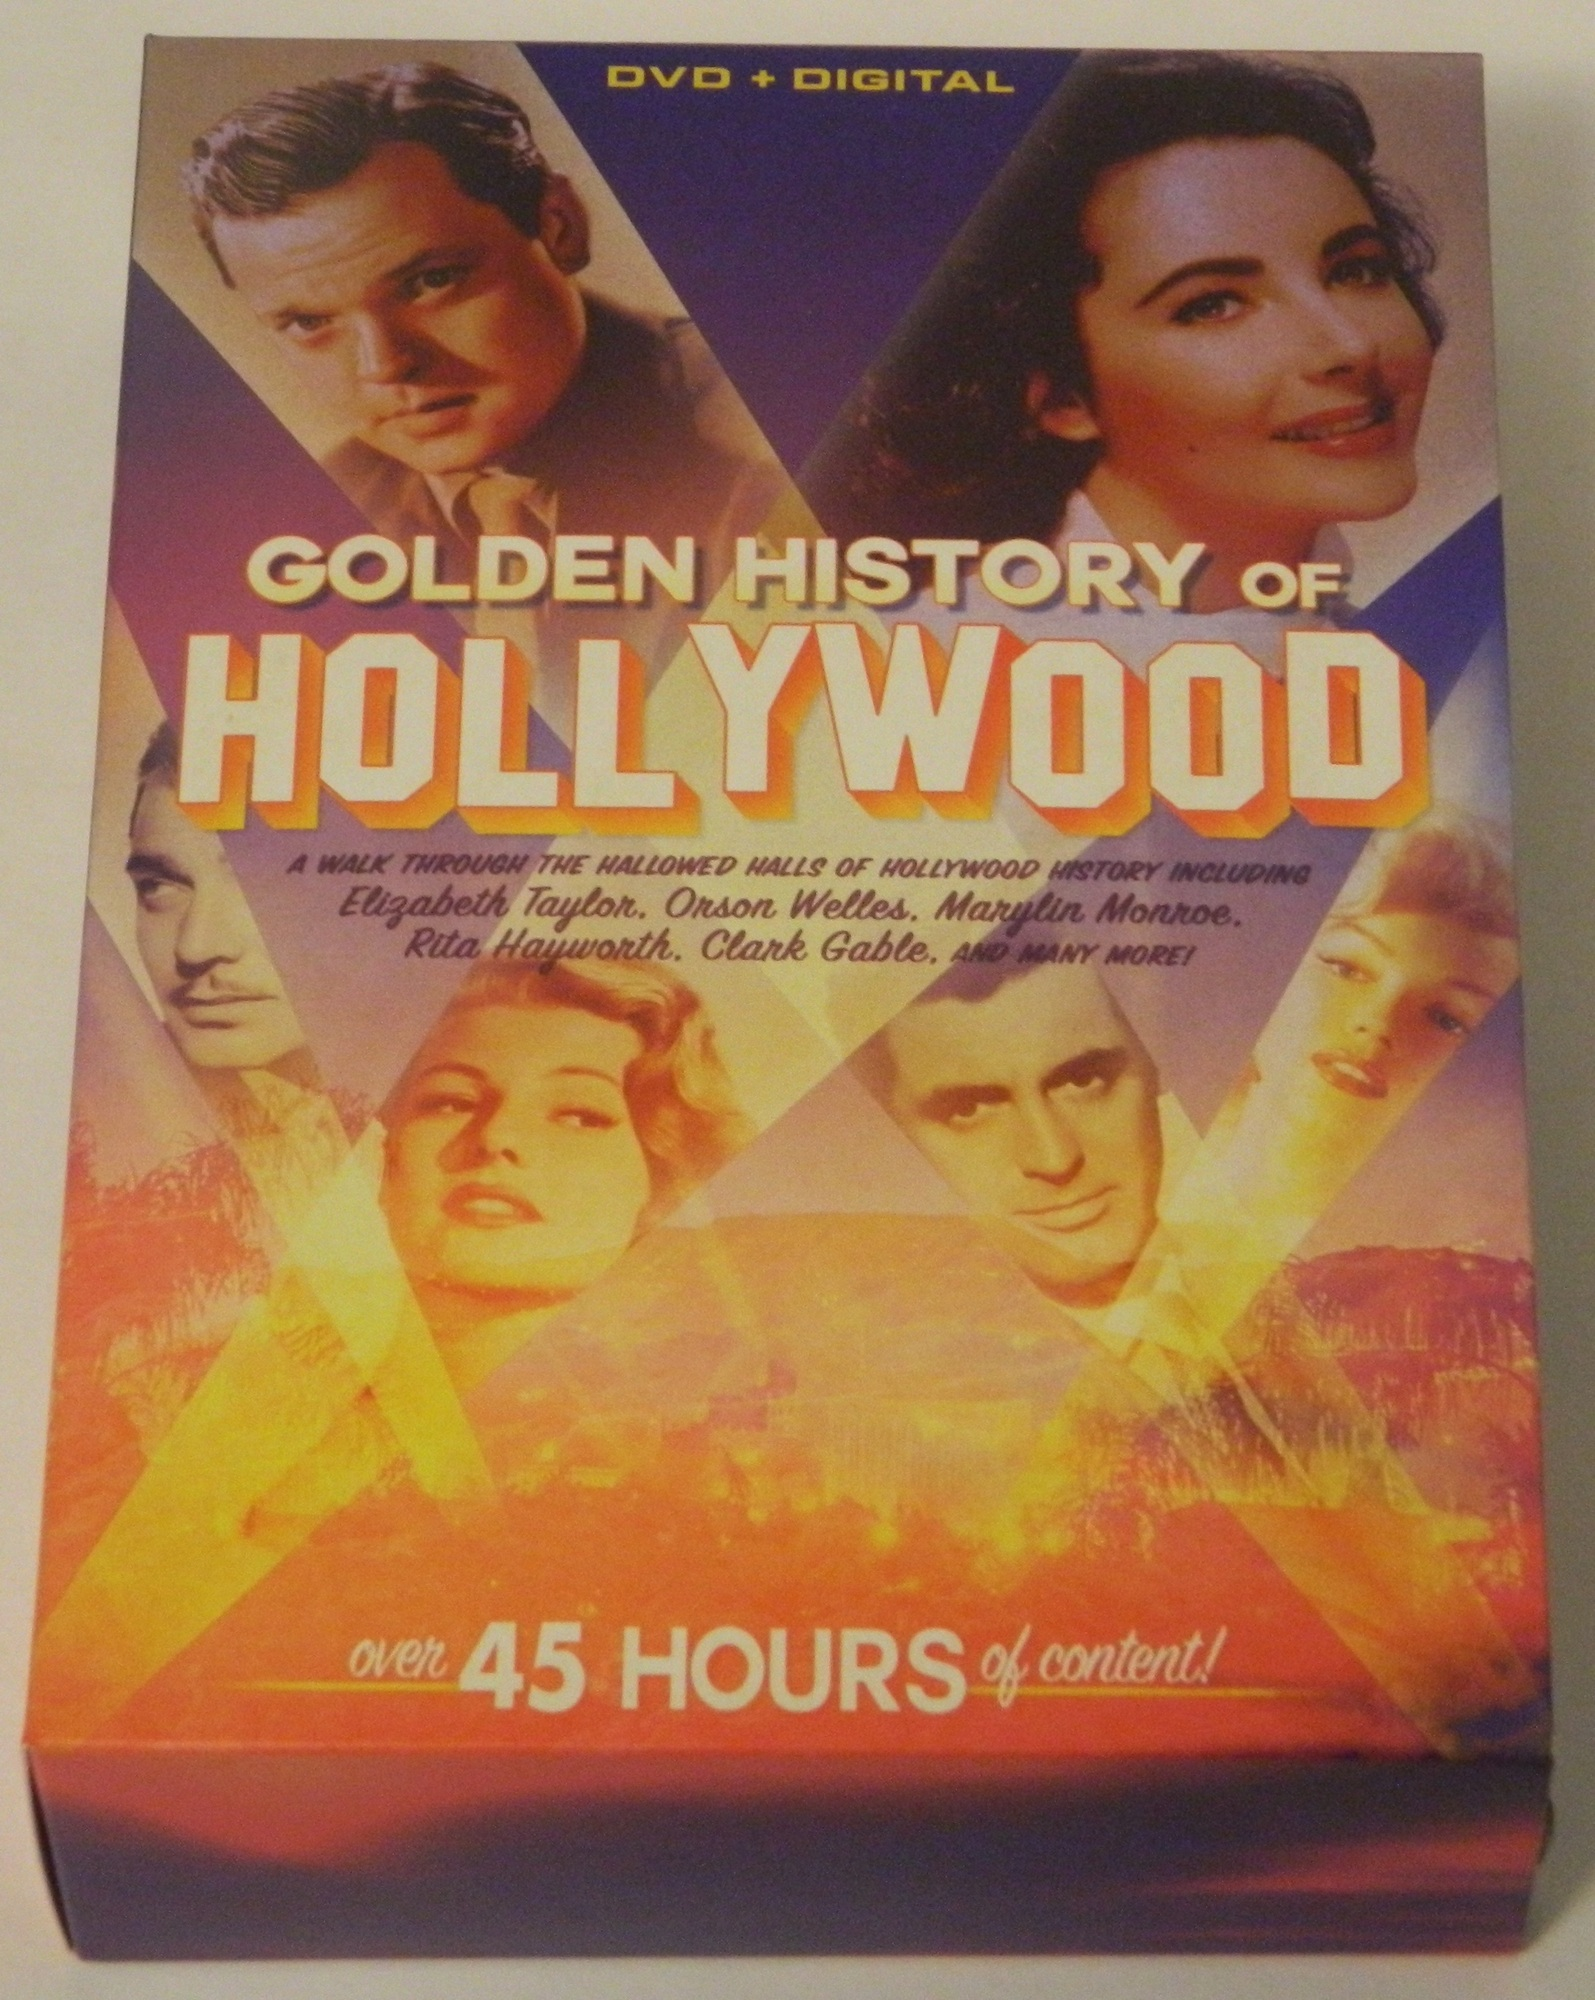 Golden History of Hollywood DVD